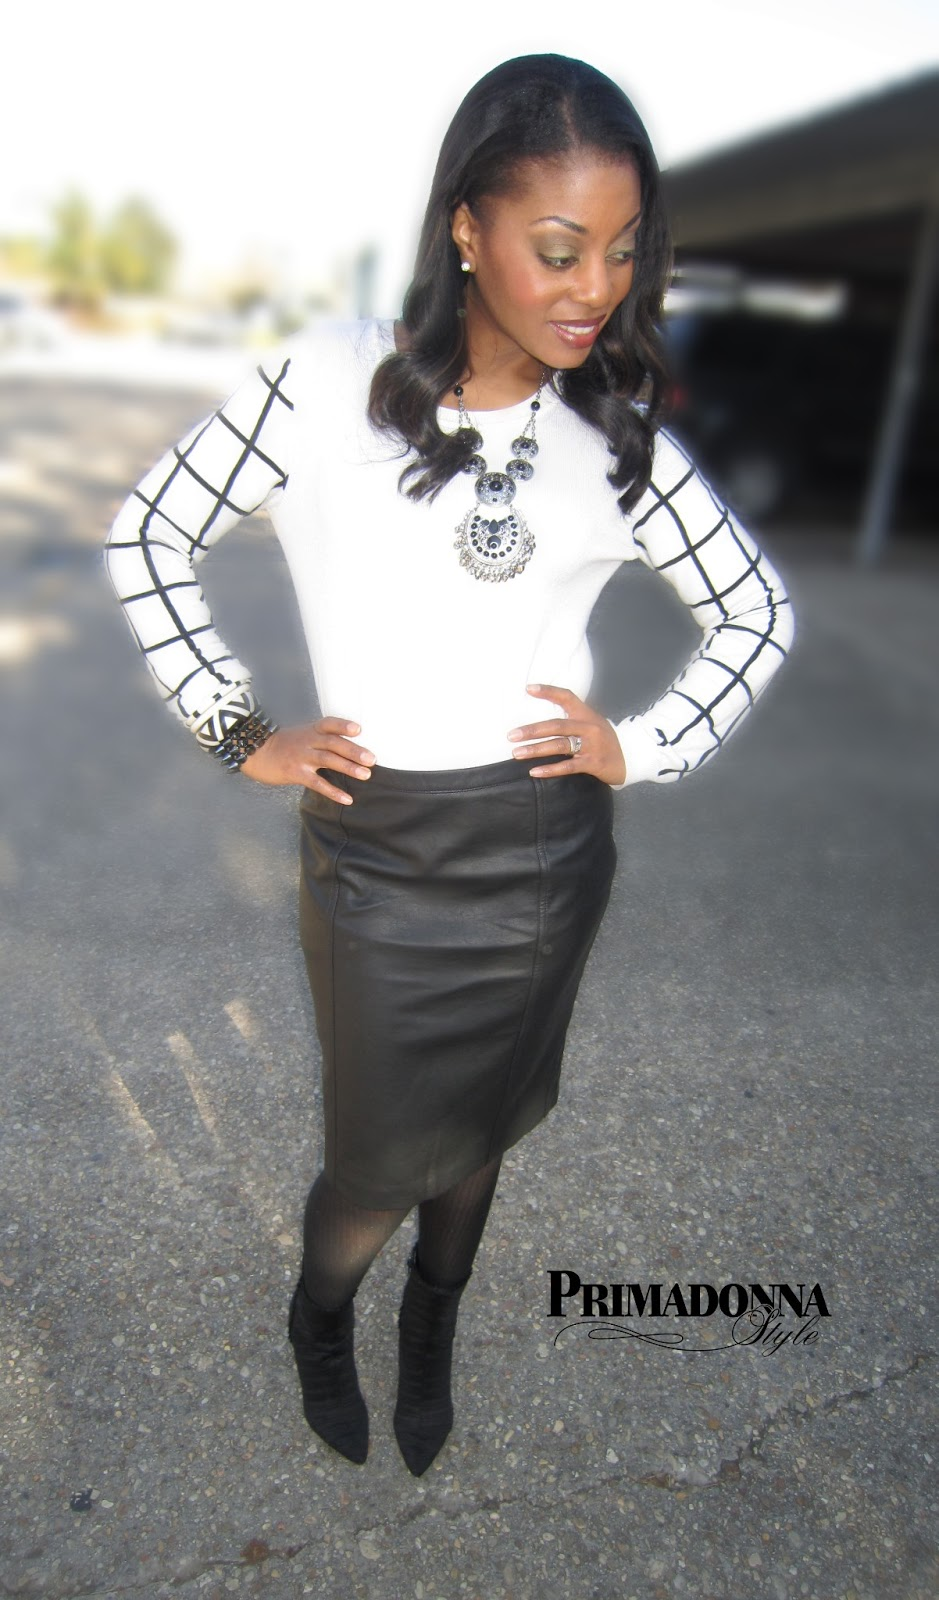 Primadonna Style: Work Week Chic: How to Wear a Leather Skirt